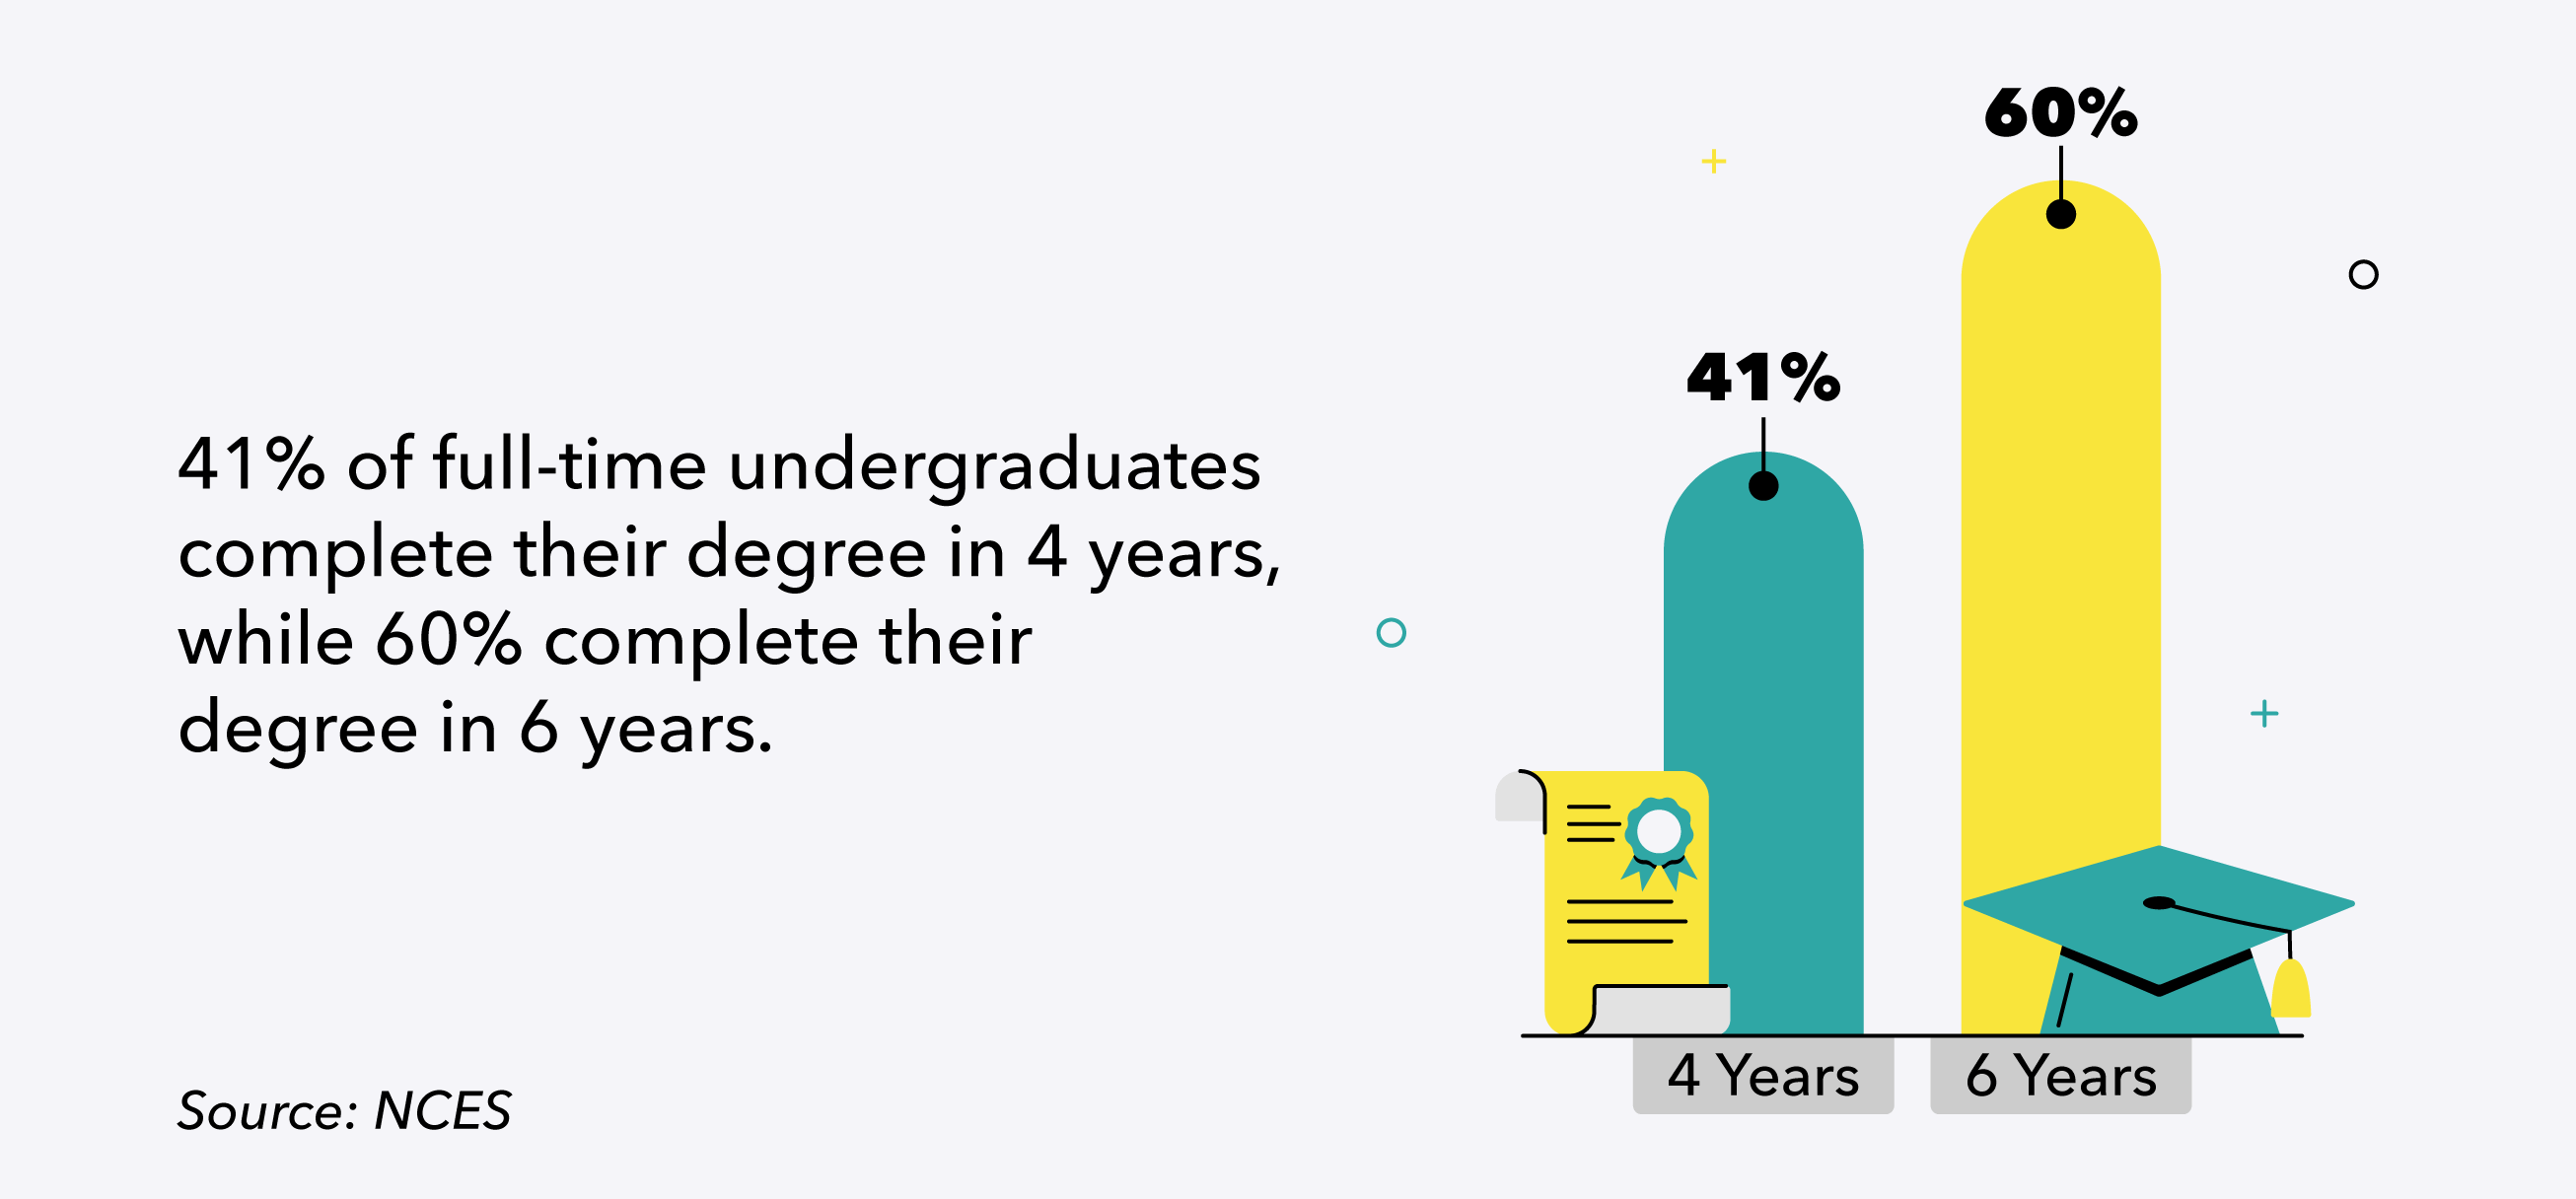 41% of full-time undergraduates complete their degree in 4 years, while 60% take 6 years.